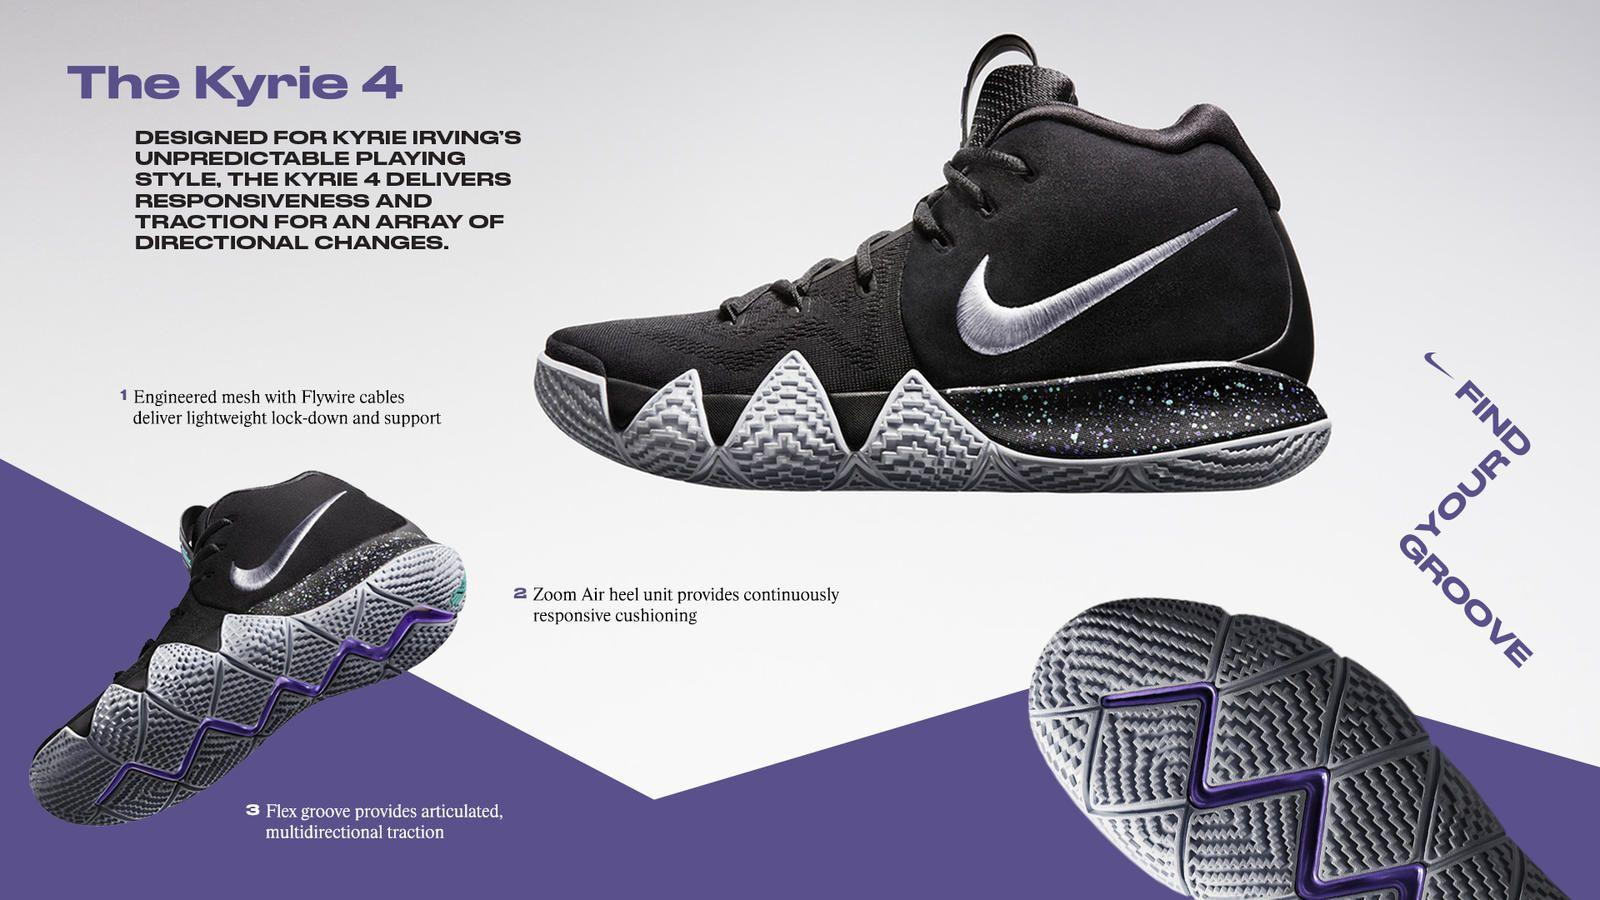 newest 03ea2 421f7 Nike Kyrie 4 Wallpapers - Wallpaper Cave